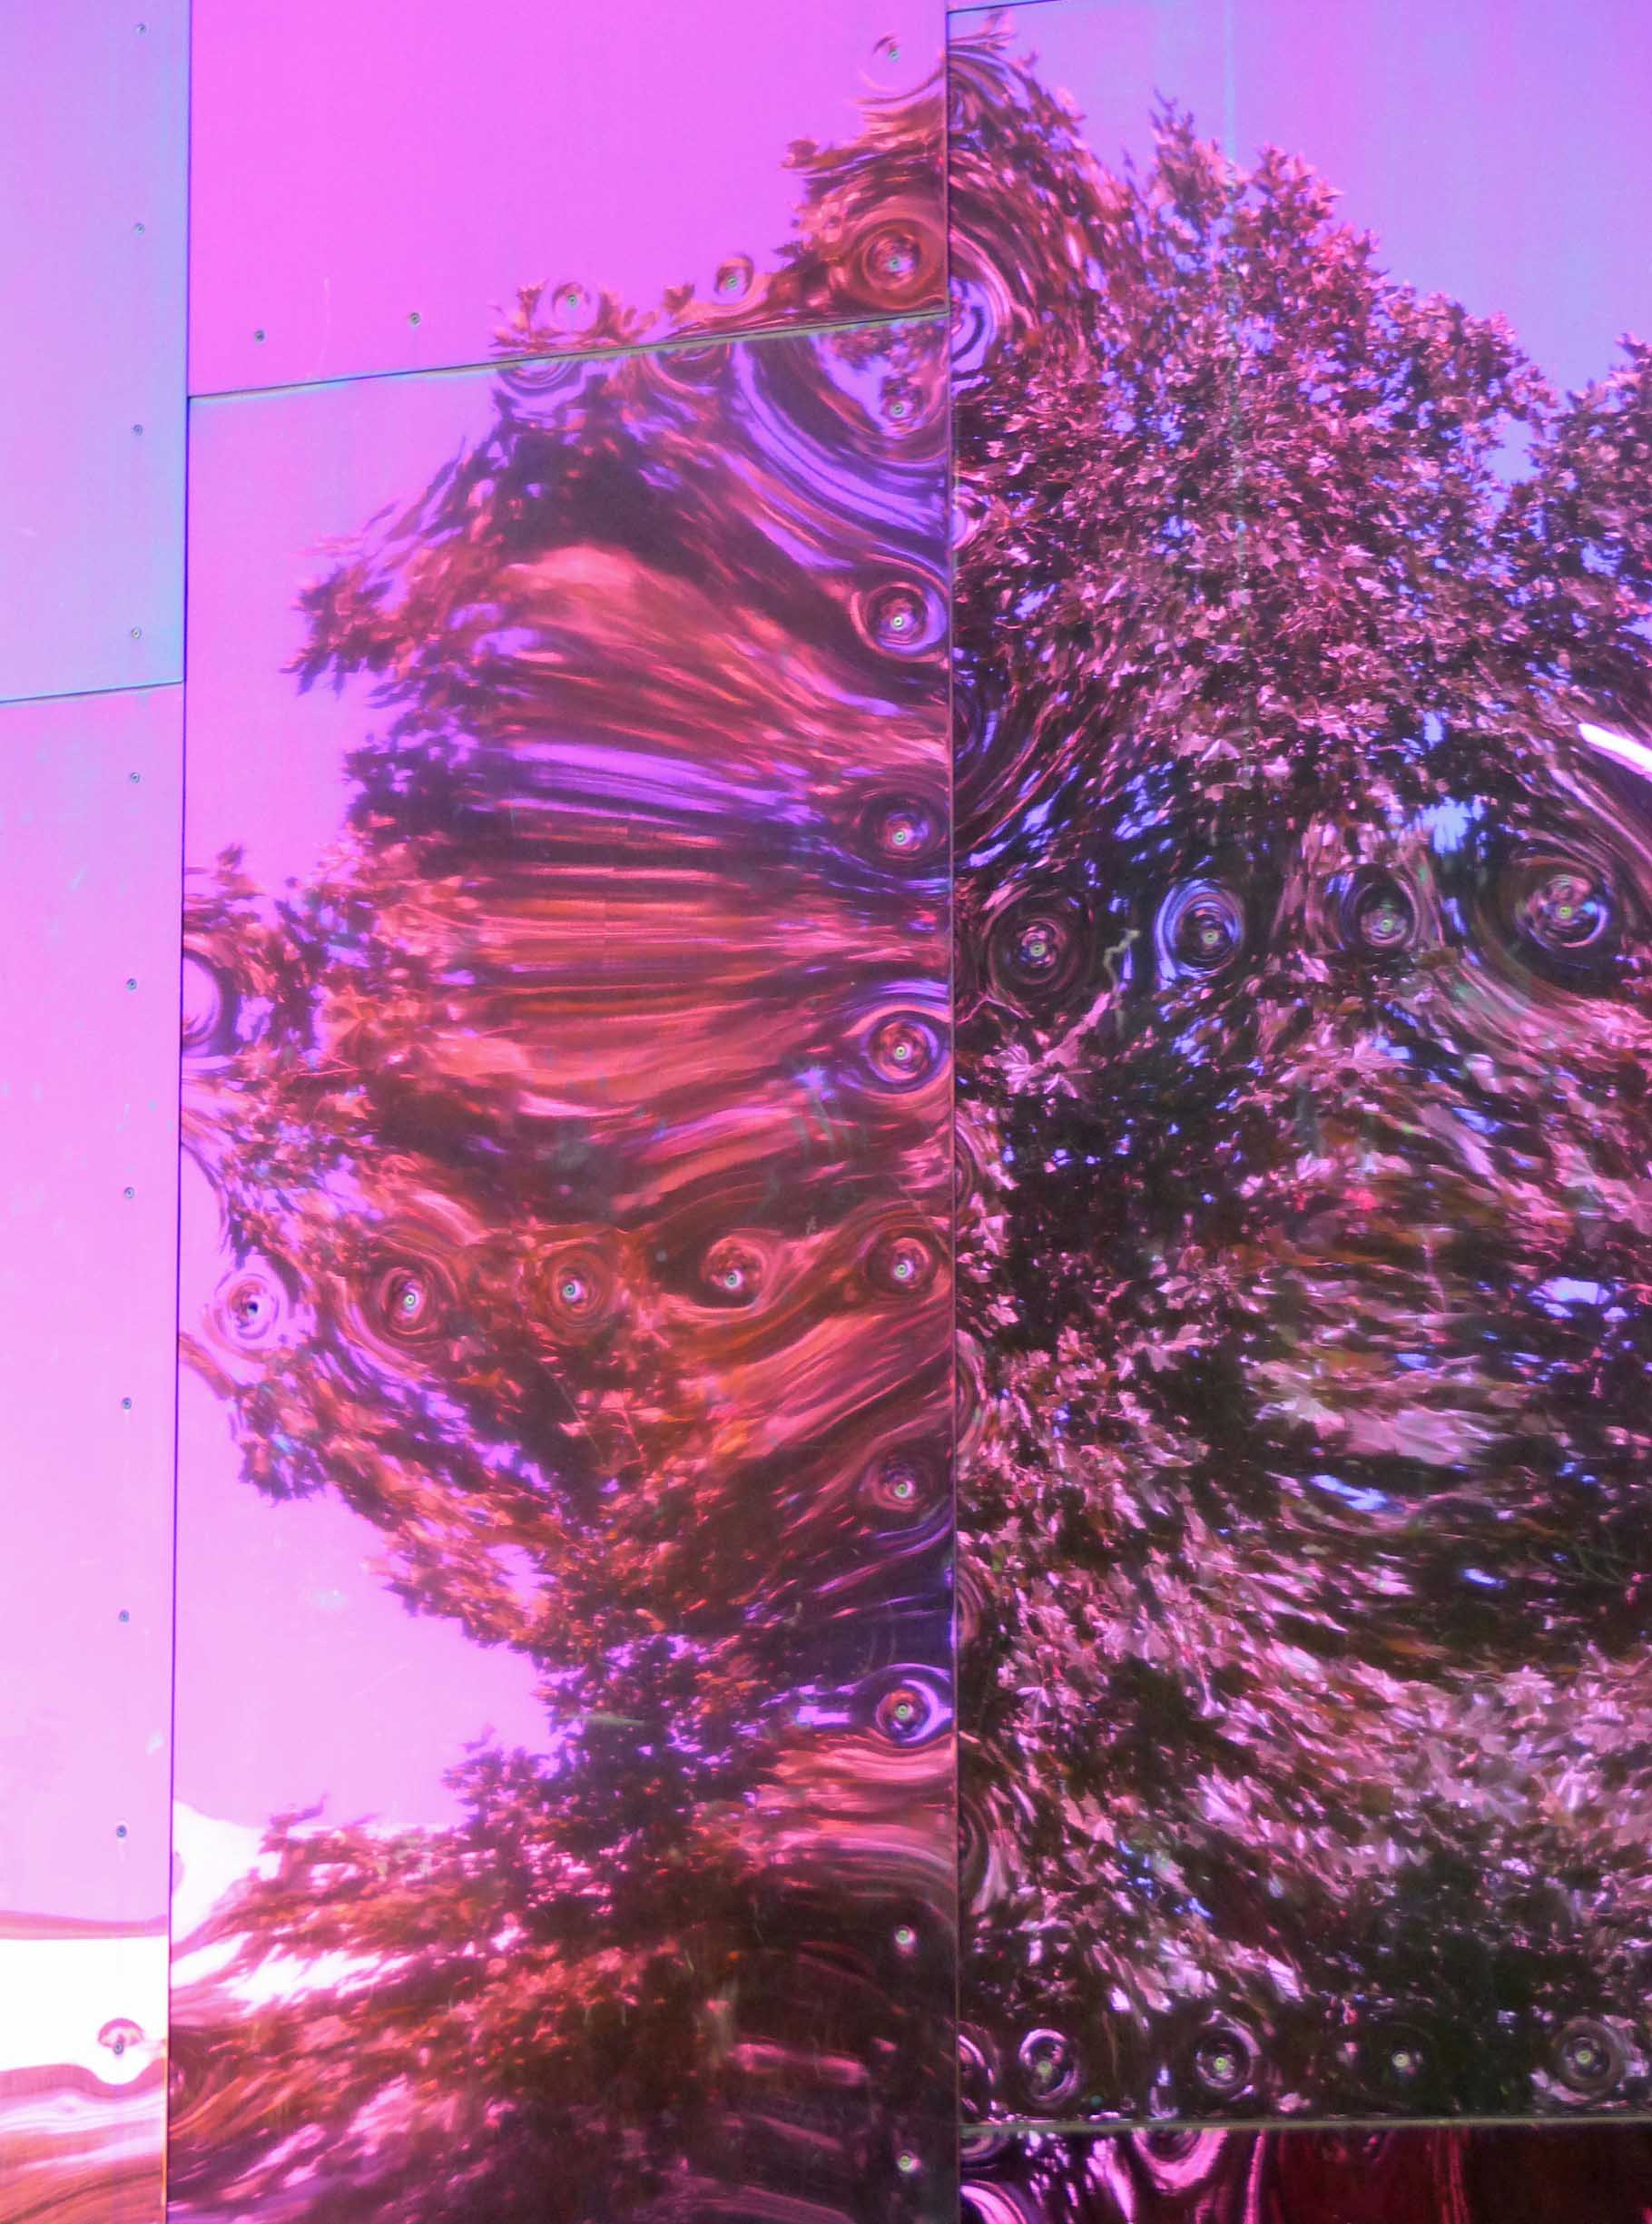 Distorted tree reflection on purple wall